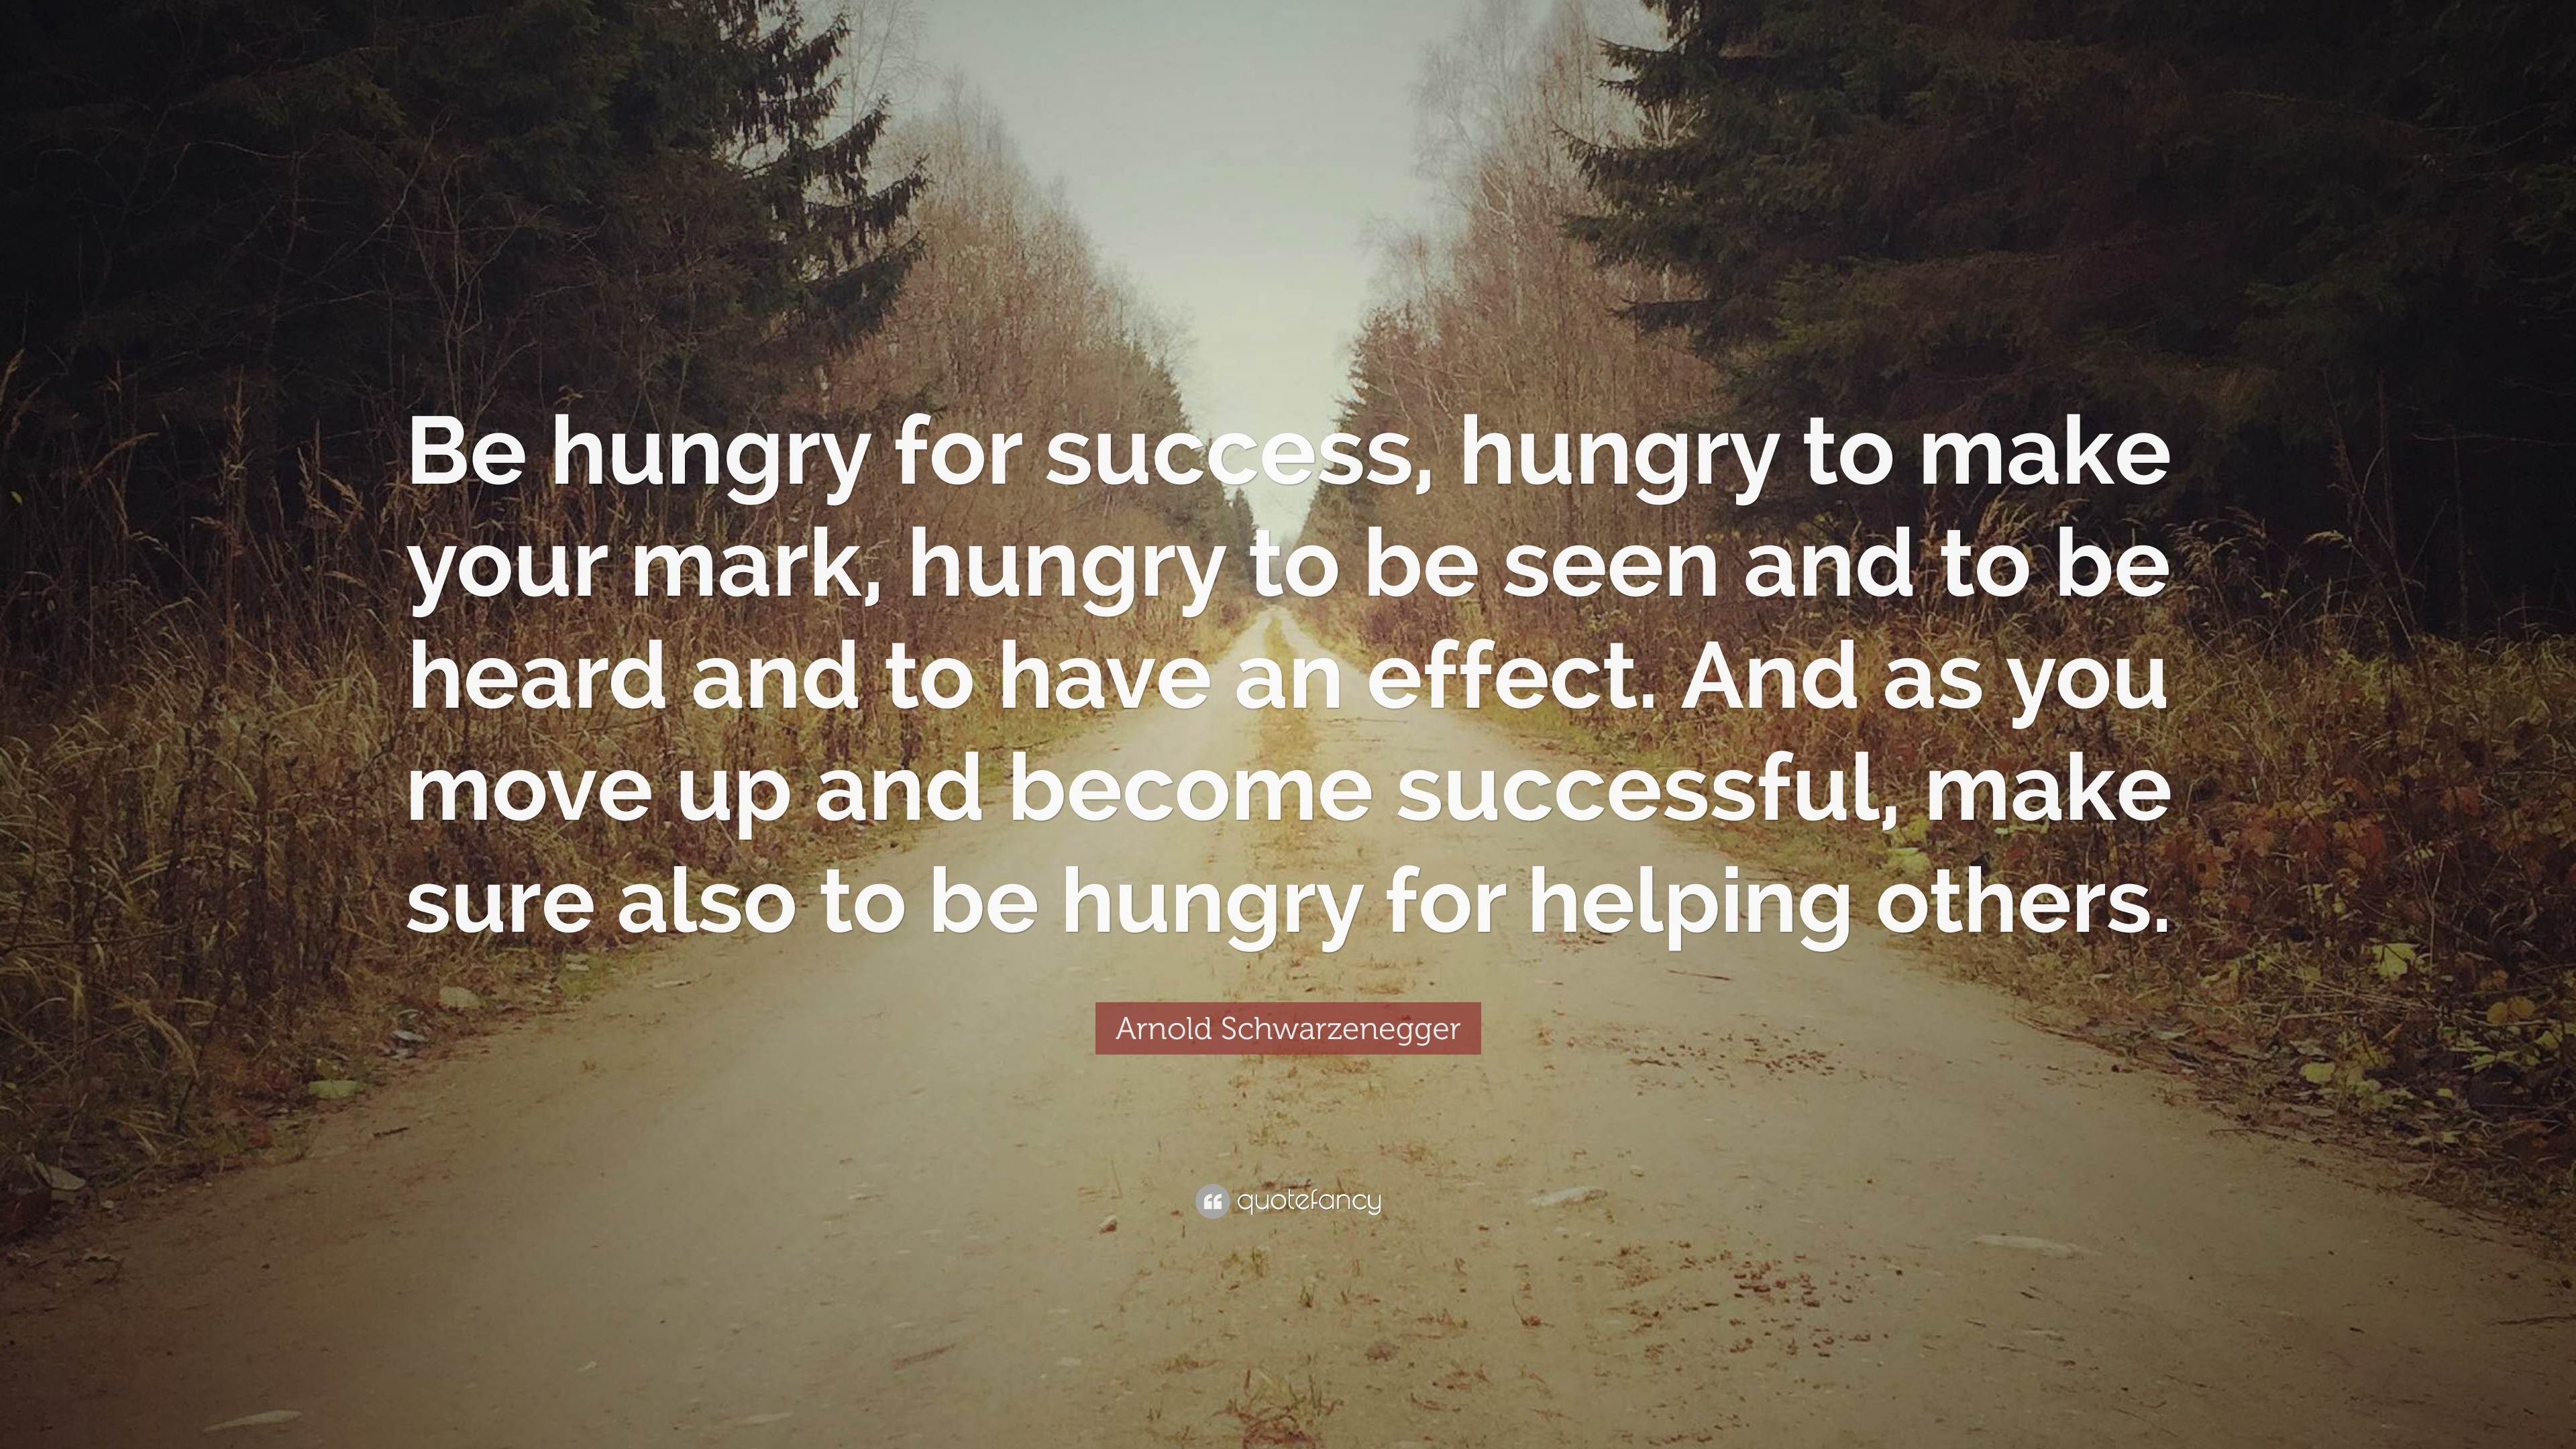 Quotes About Being Hungry For Success